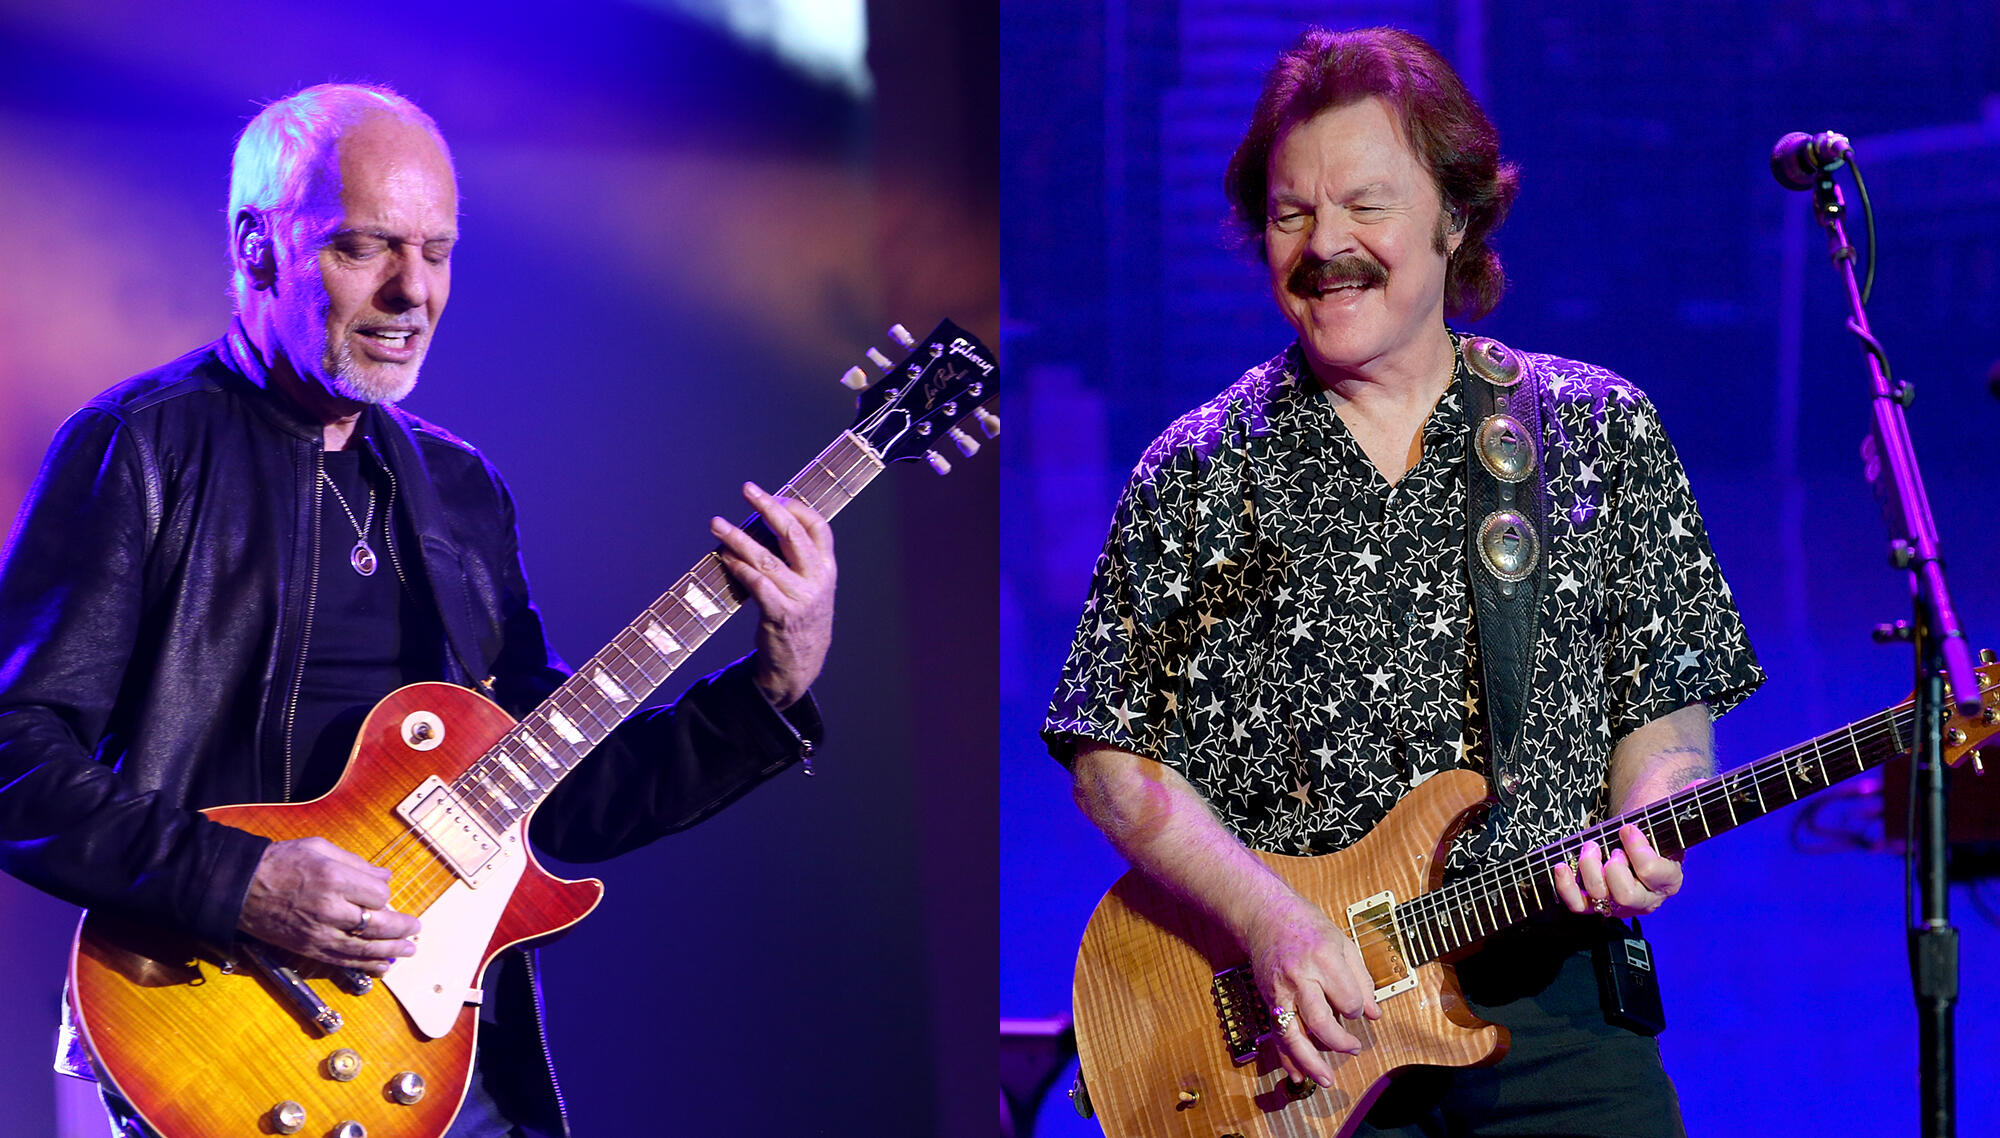 Watch Doobie Brothers Team Up With Peter Frampton For An Eric Clapton Cover